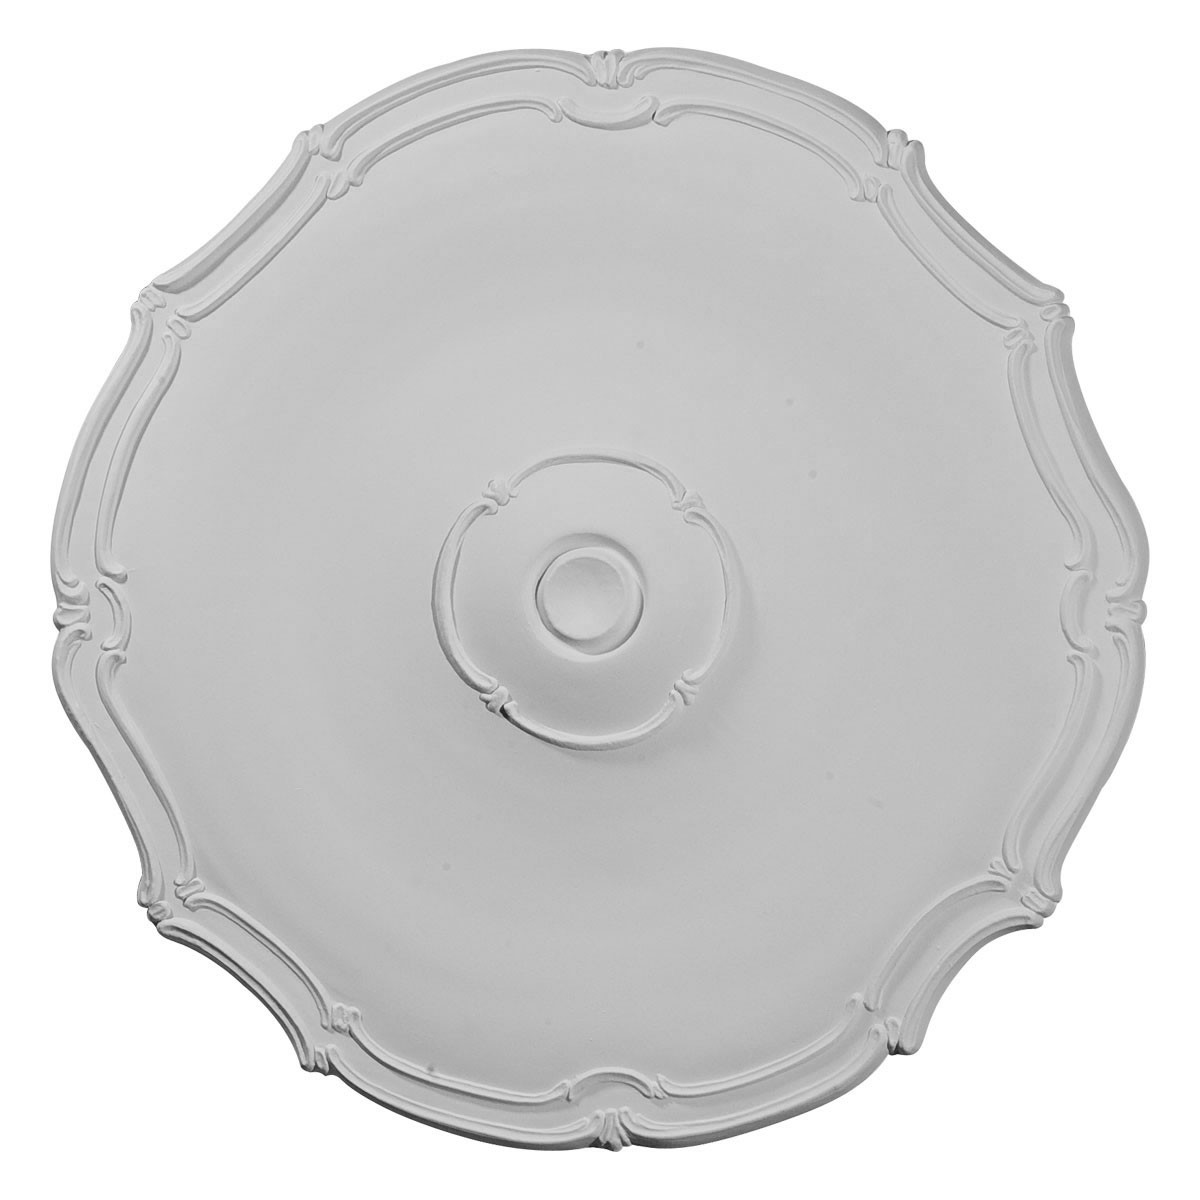 "EM-CM18PO - 18 7/8""OD x 1 1/2""P Pompeii Ceiling Medallion (Fits Canopies up to 2"")"